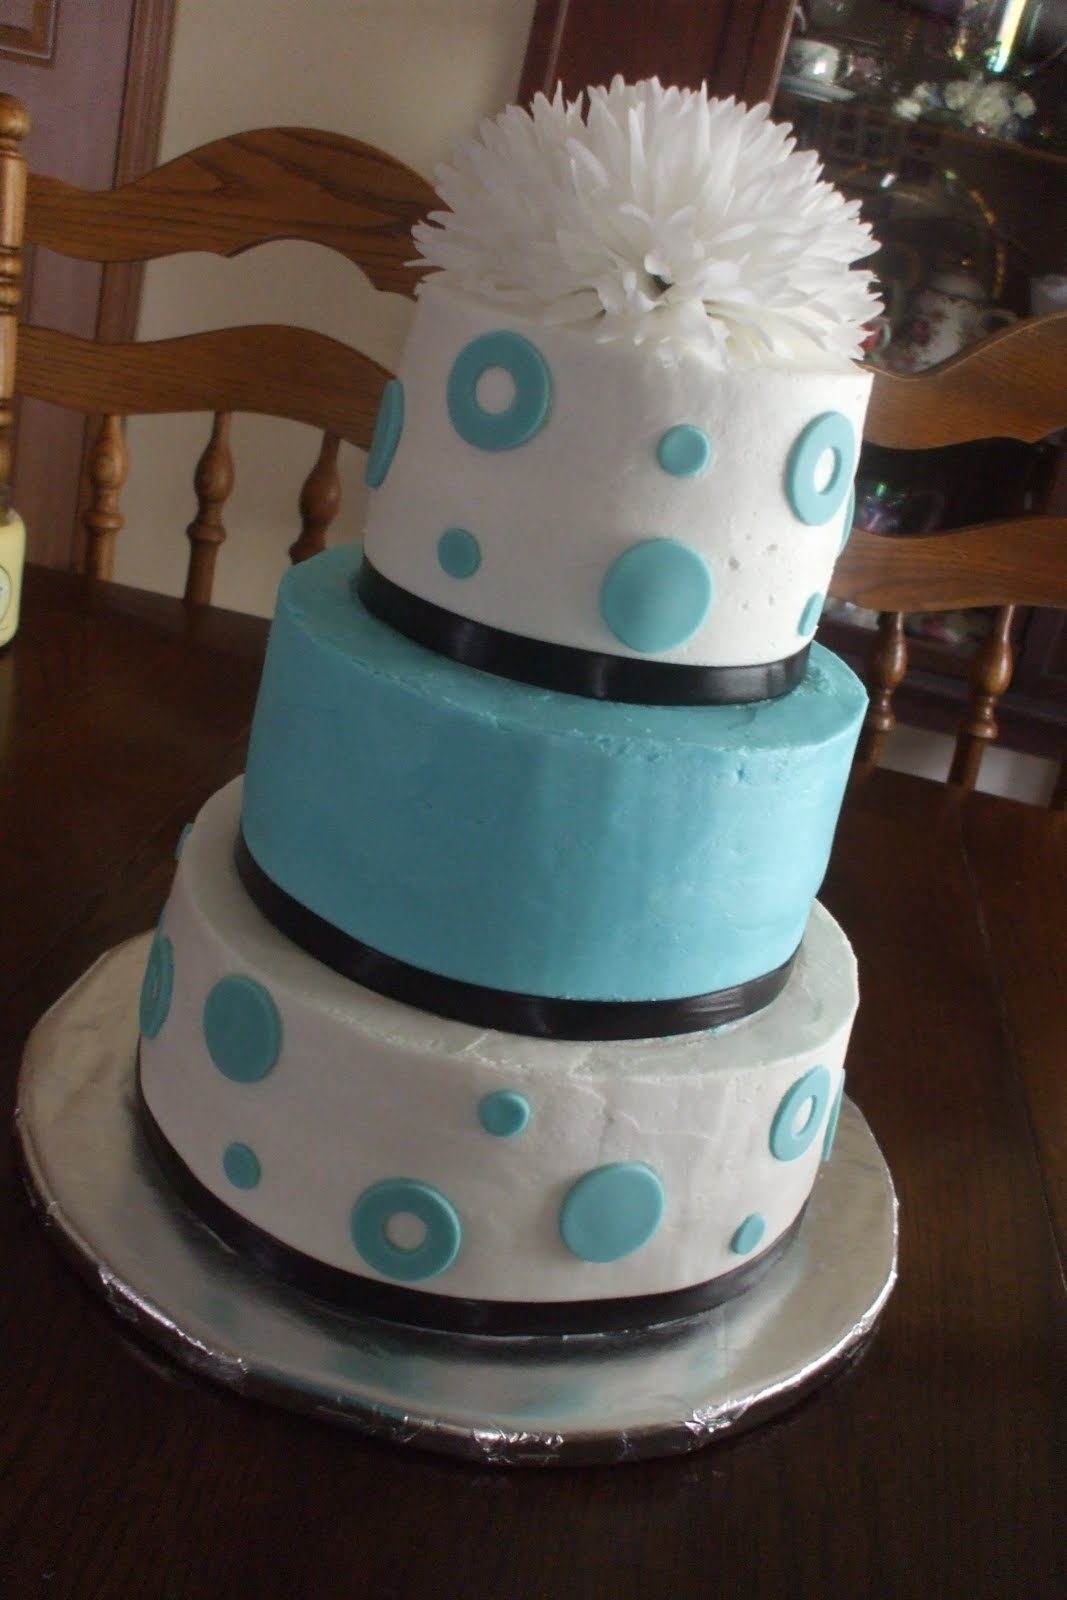 The Simple Cake Tiffany Blue & Brown Wedding Cake